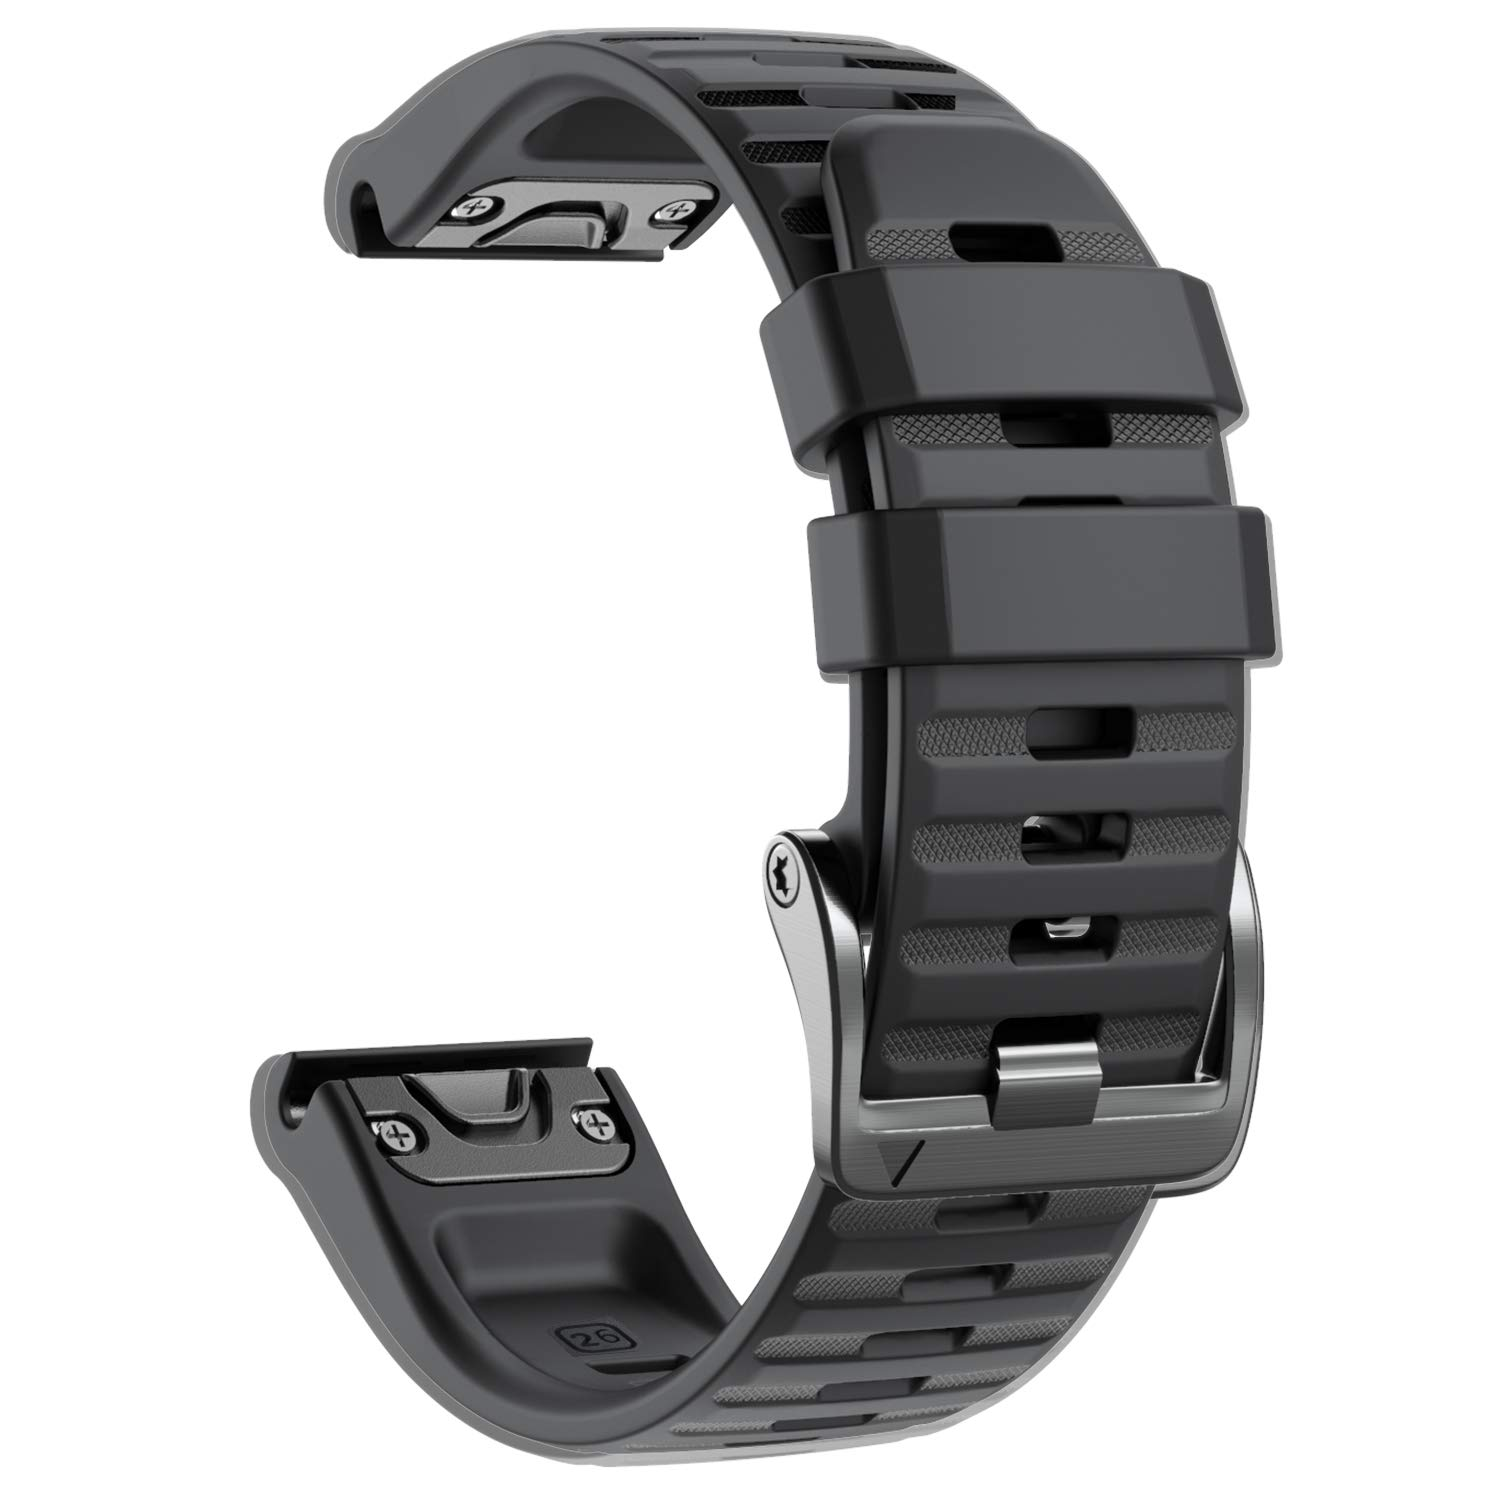 NotoCity Compatible with Fenix 6X Watch Band for Fenix 6X/Fenix 6X Pro/Fenix 5X/Fenix 5X Plus/Fenix 3/HR/Descent MK1/D2 Delta PX/D2 Charlie(Black)